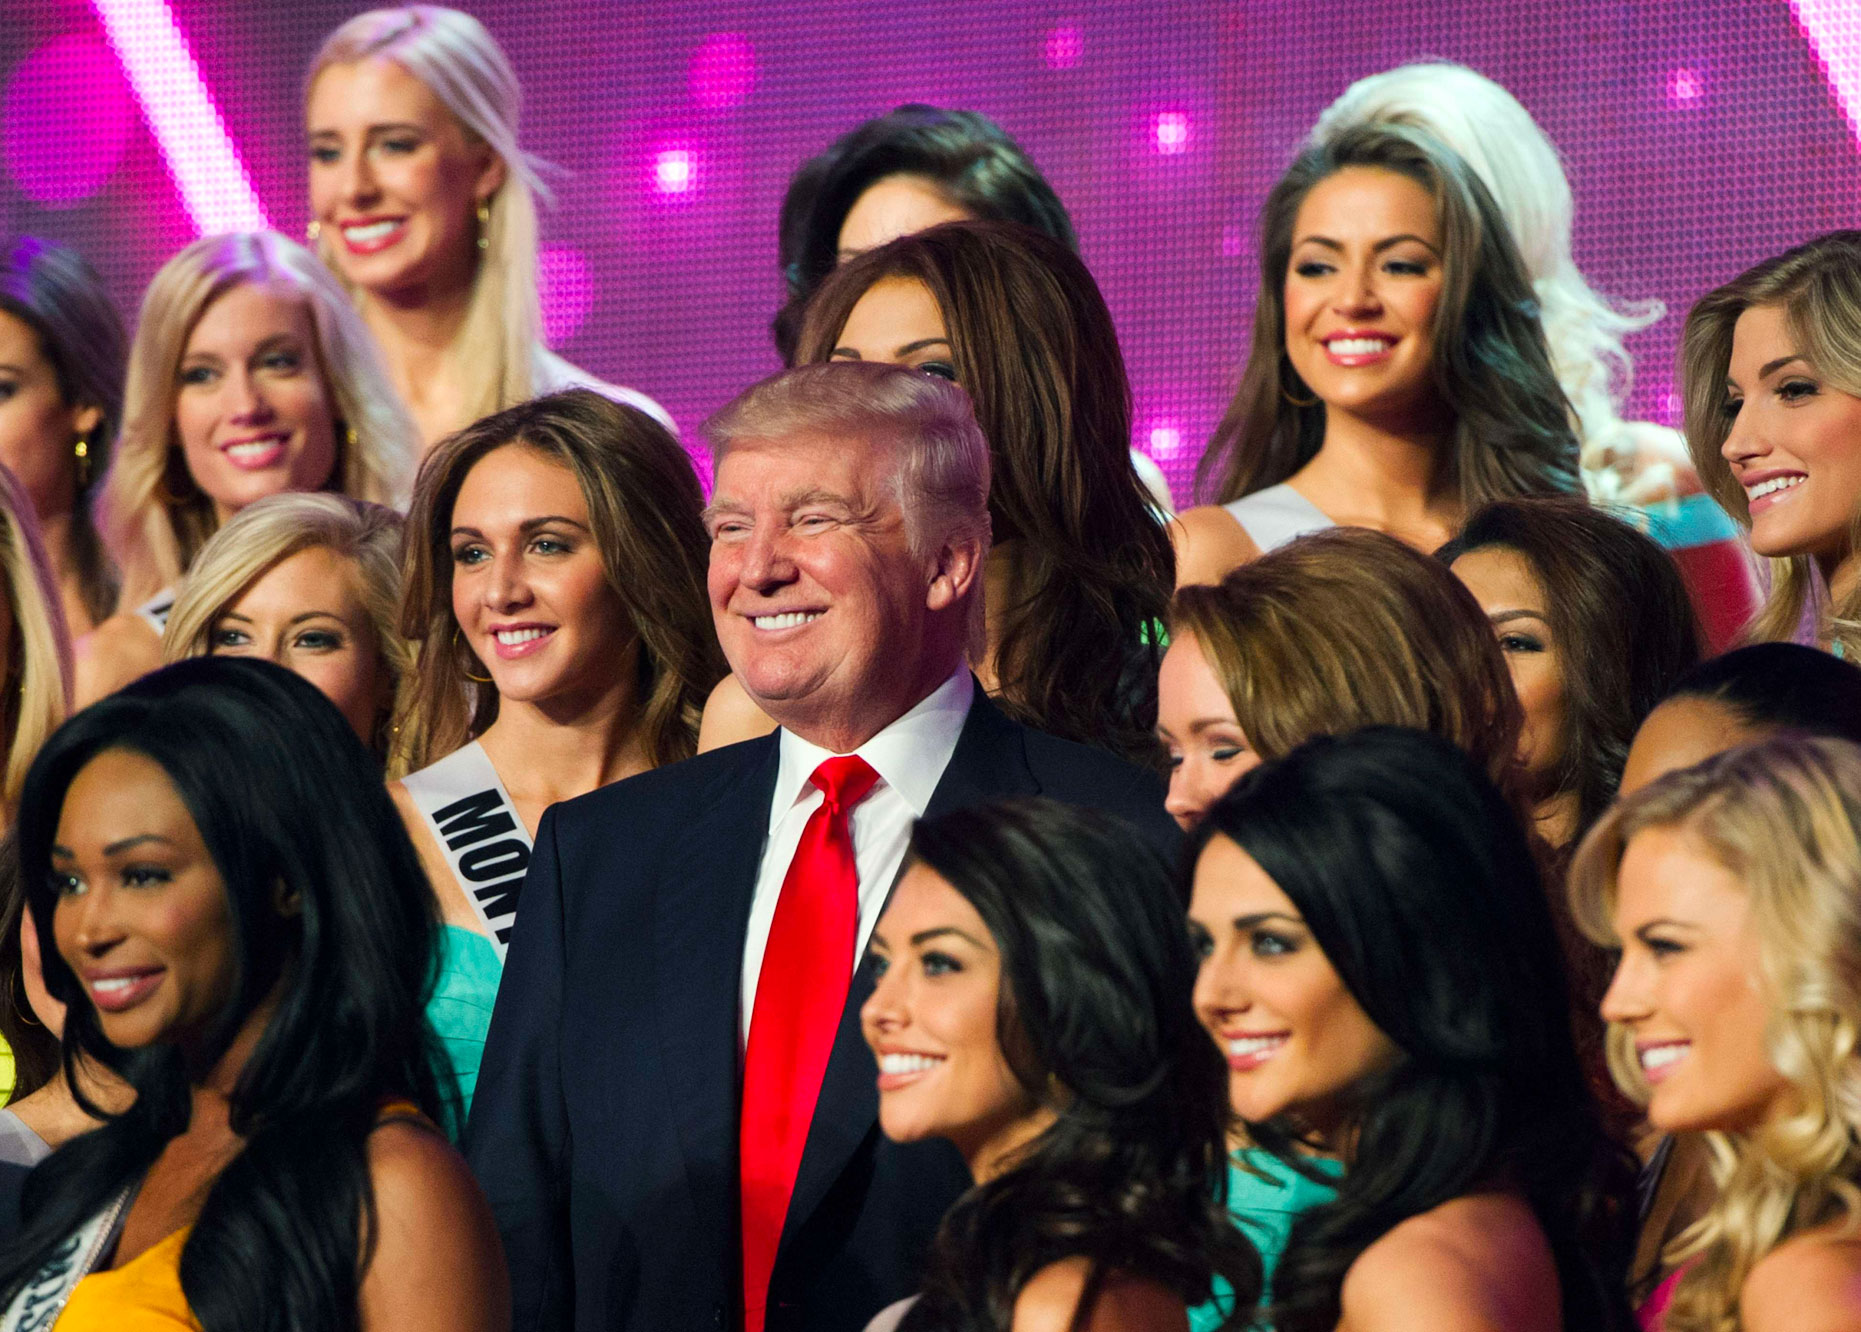 Donald Trump Miss USA 2013